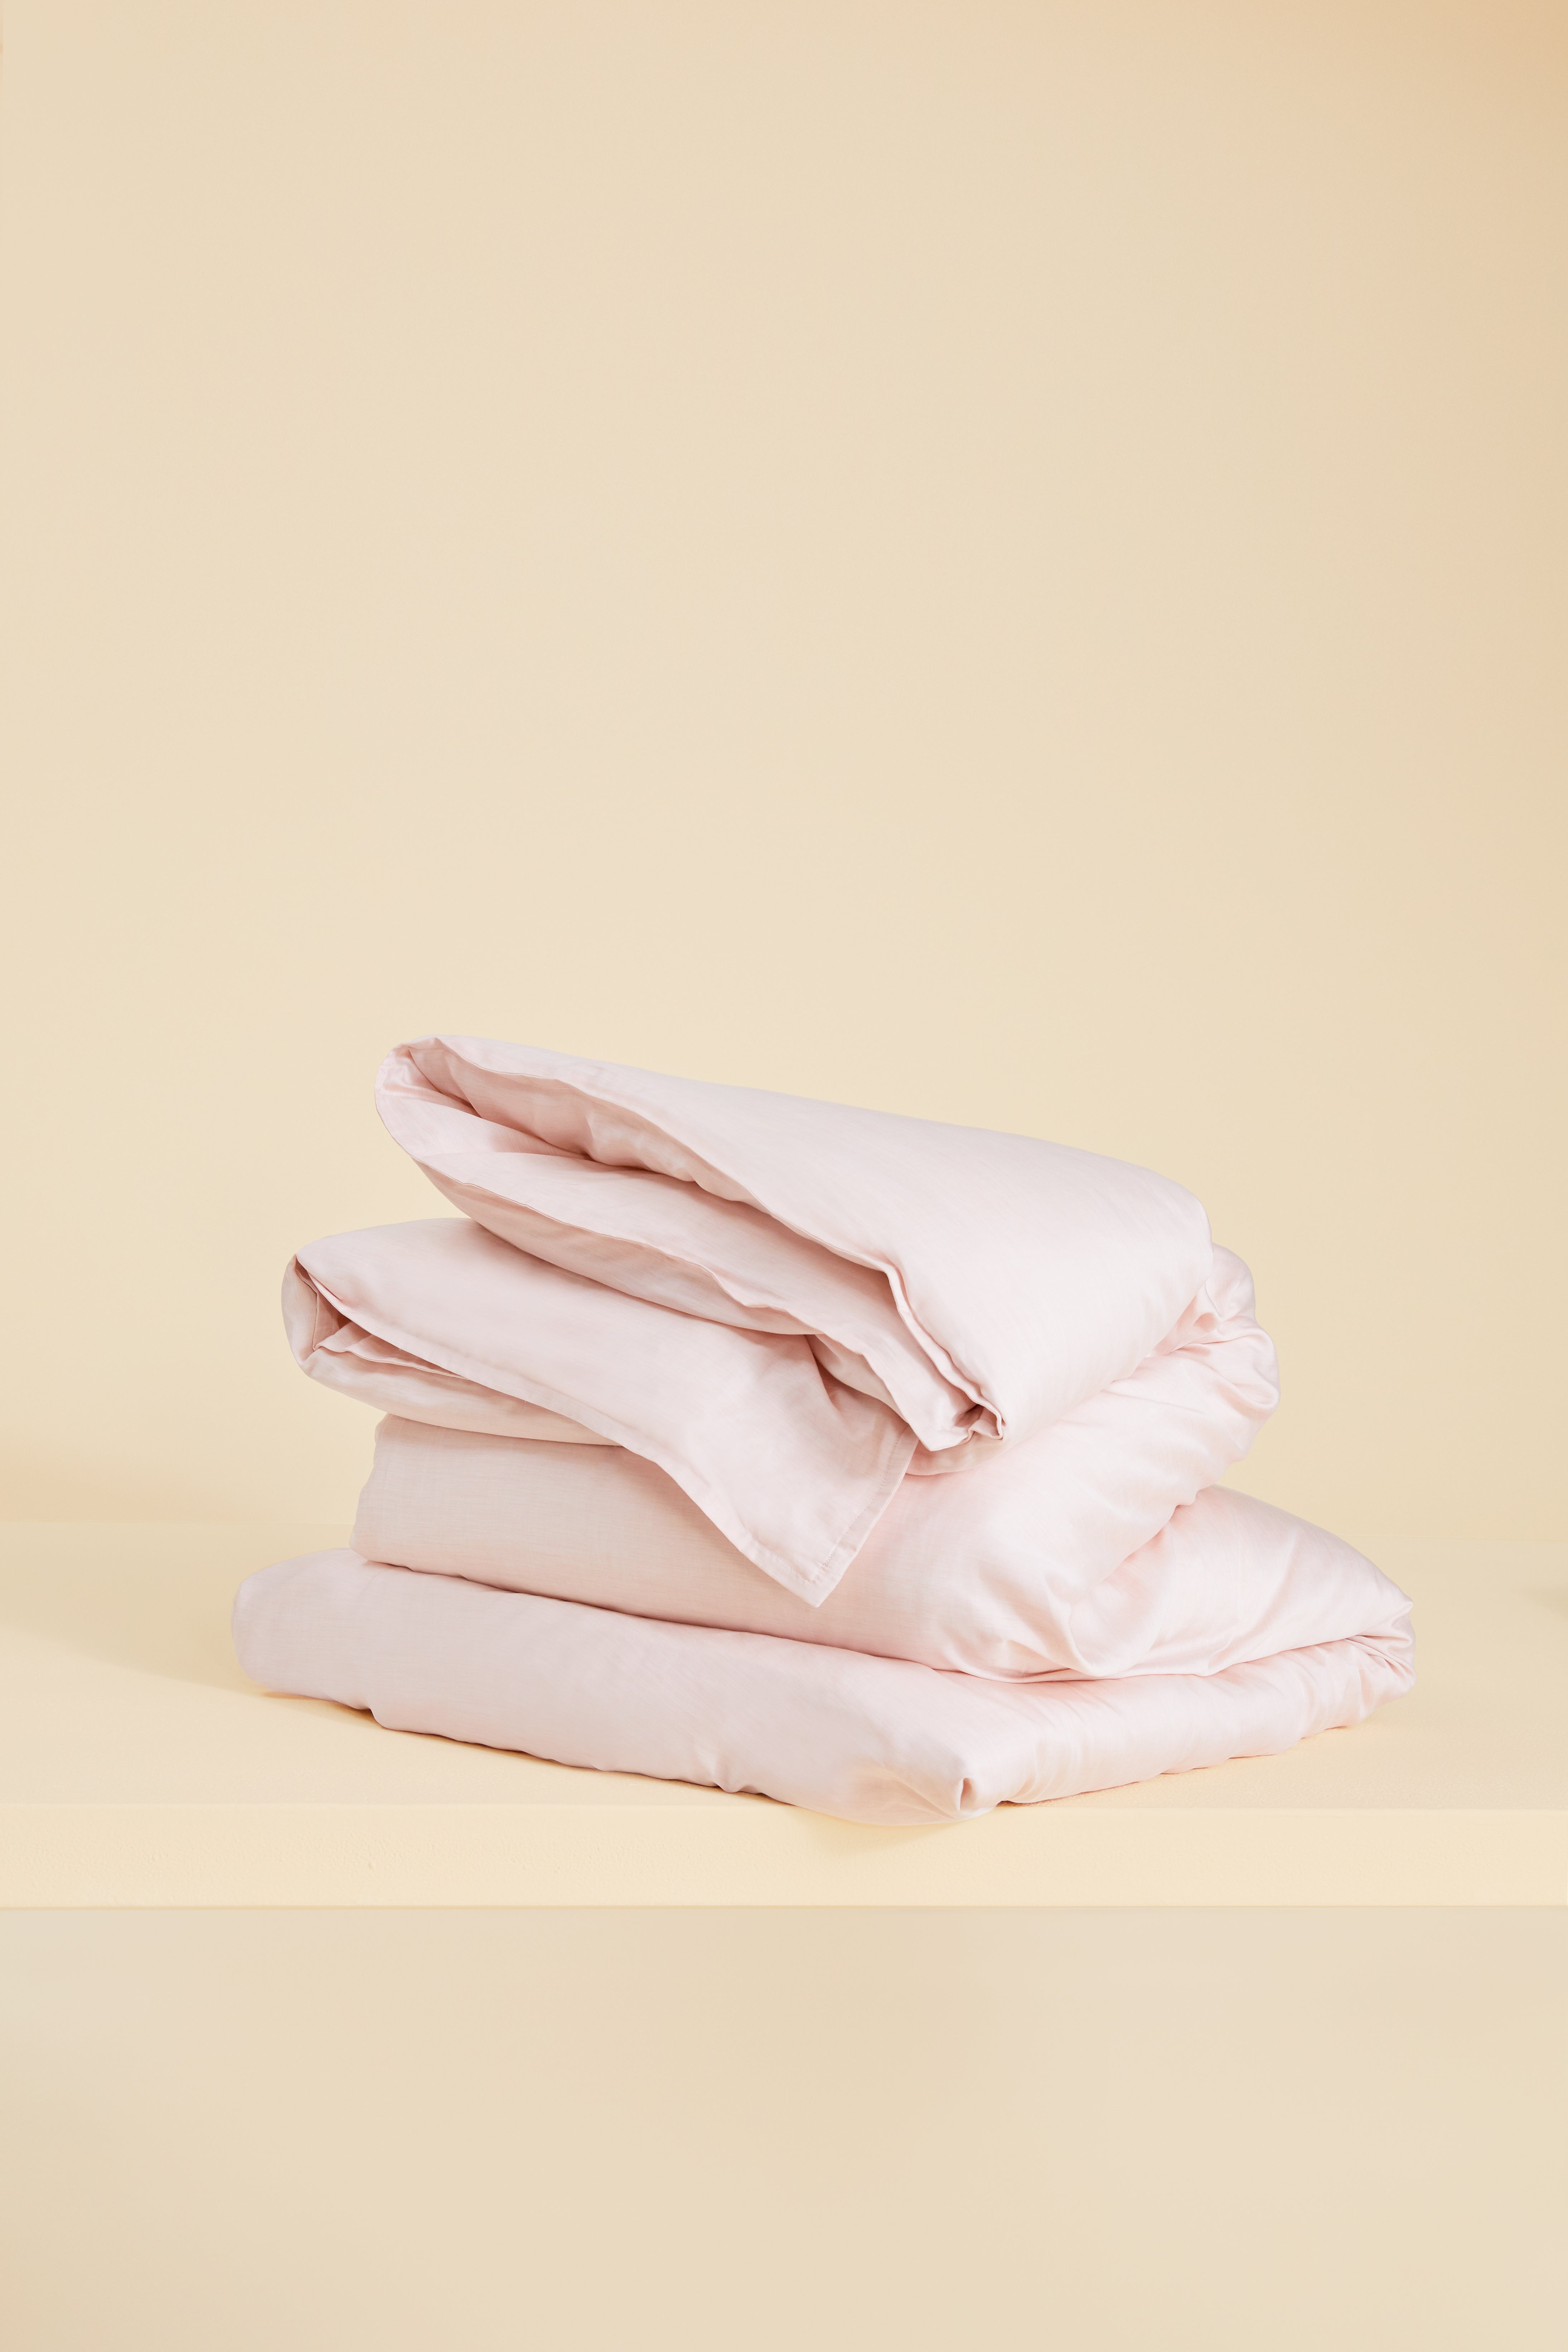 The Coolest New Sheets Are Made with Ultrasonic Tech and Natural Dyes